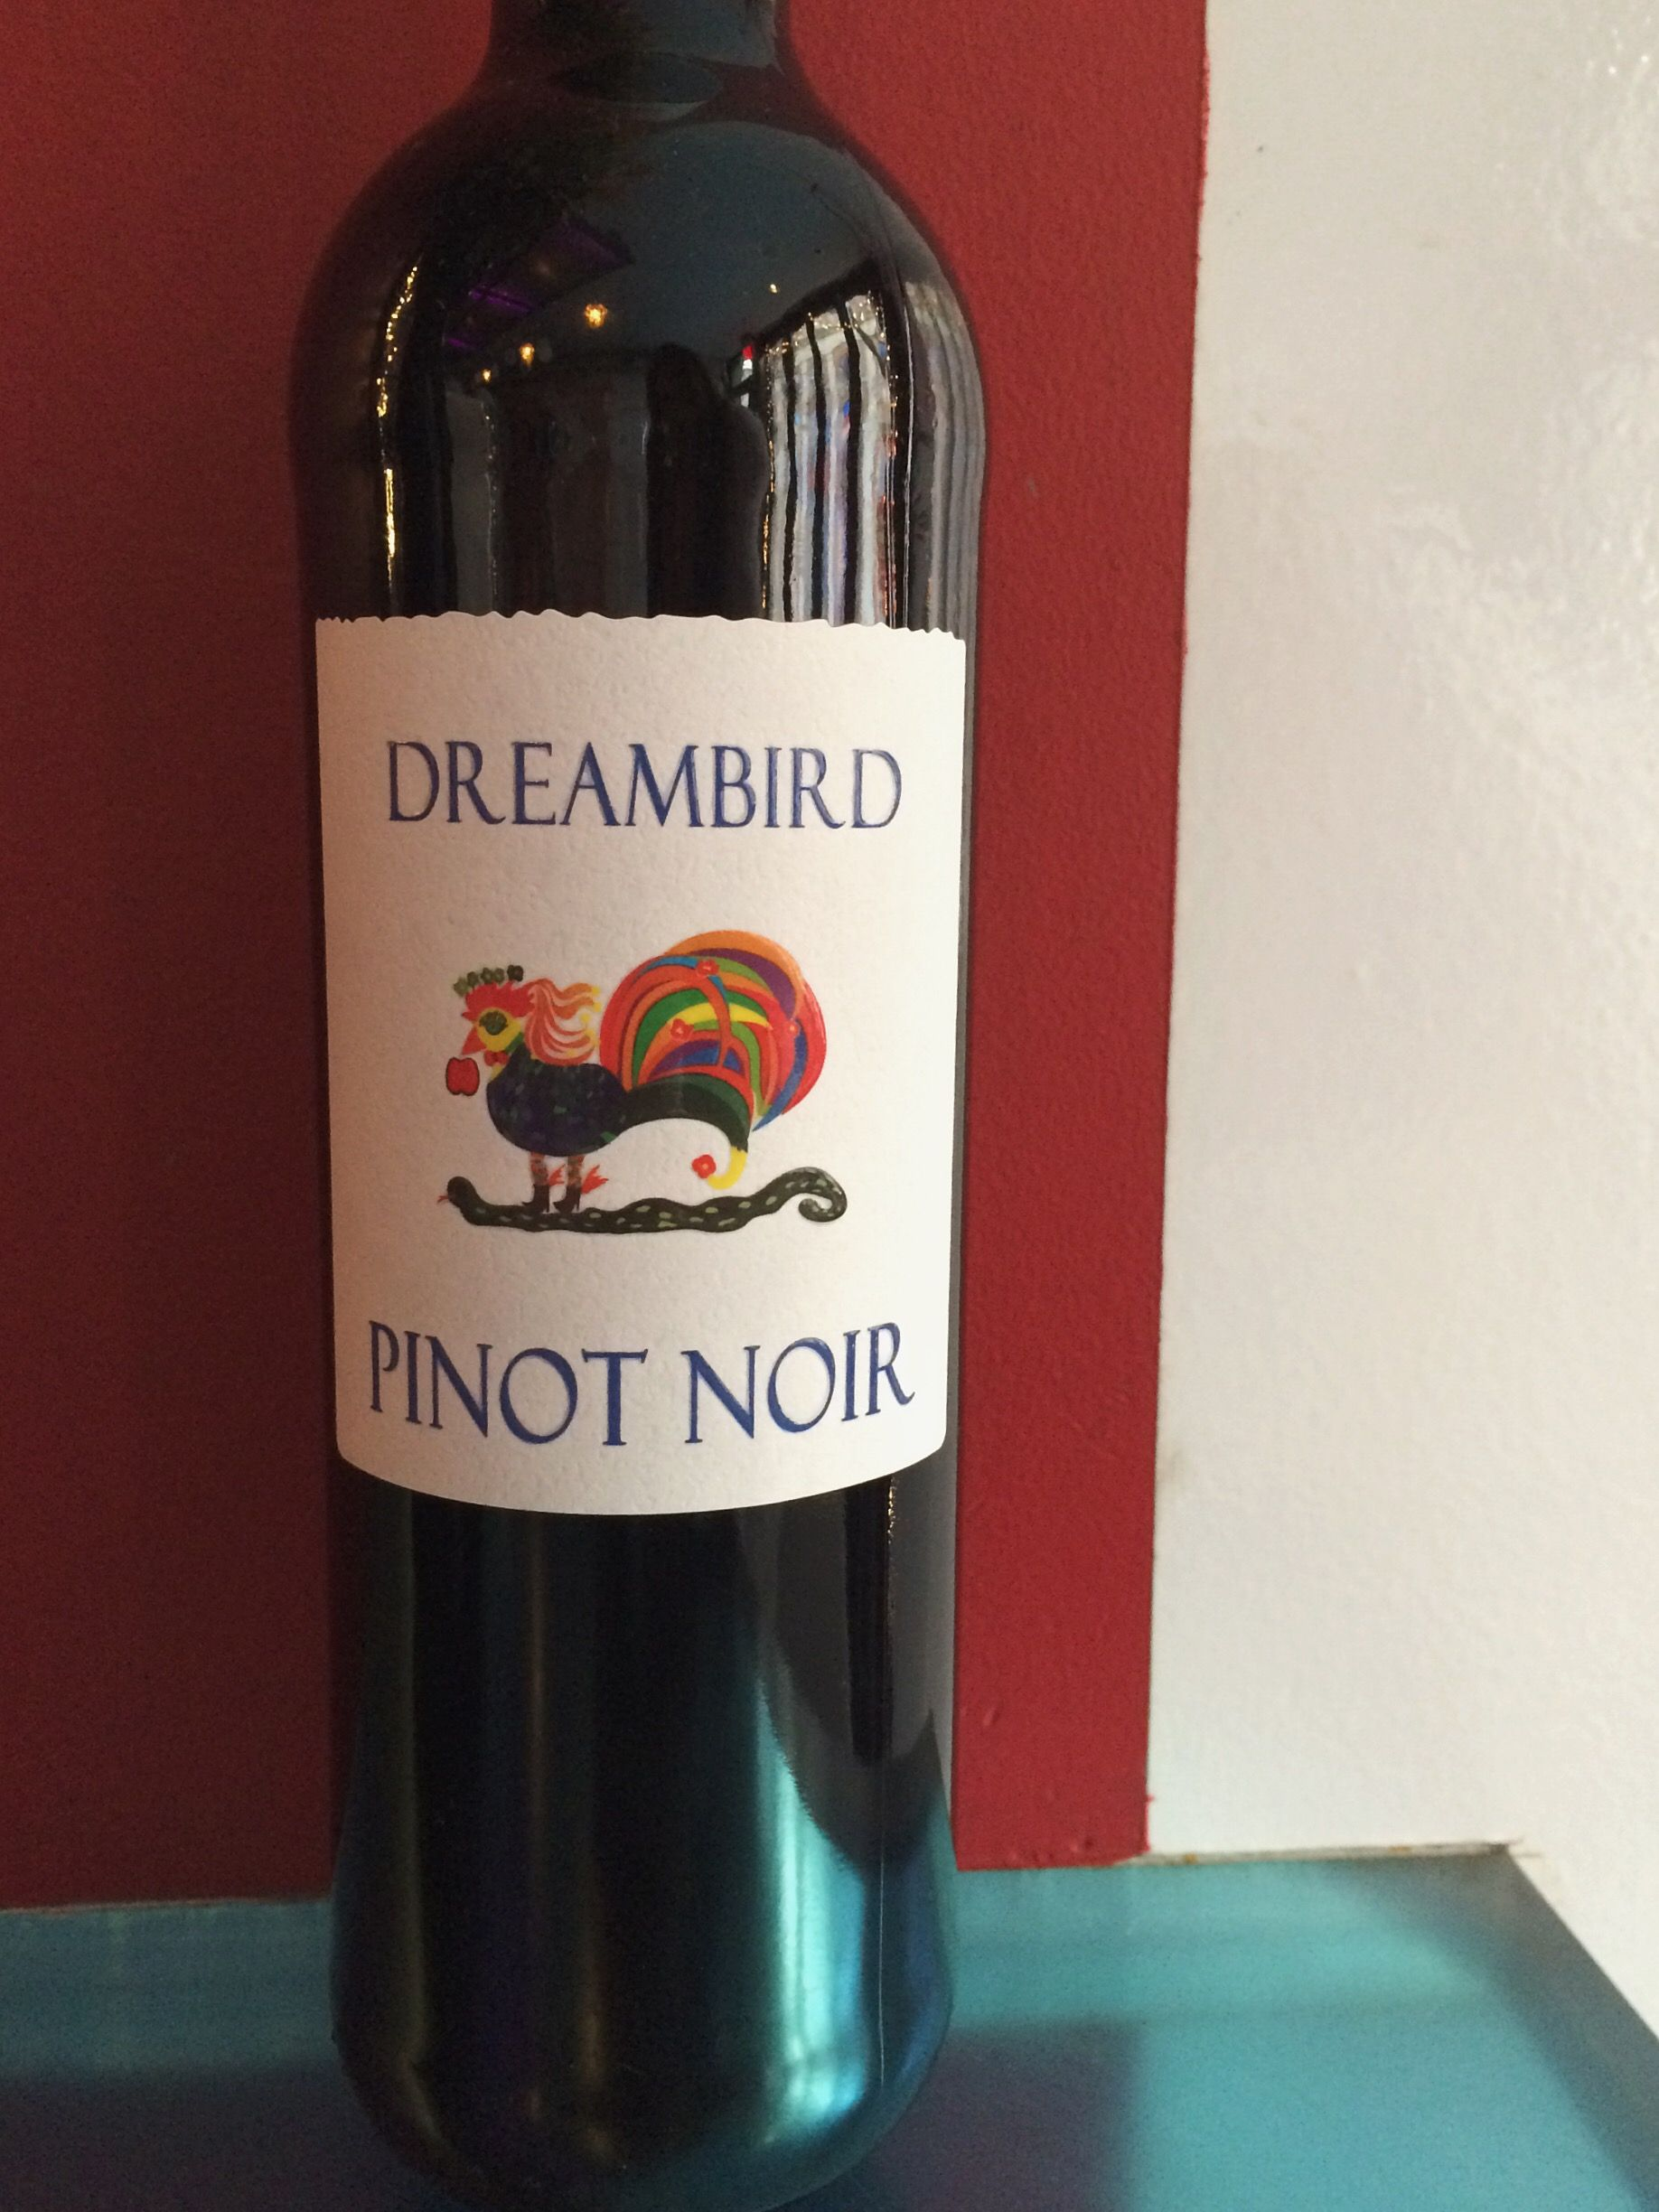 Dreambird Pinot Noir Cramele Recas Romania Light Body With Ripe Fruit Spice Earth Transylvania Wine By The Glass Ripe Fruit Wine List